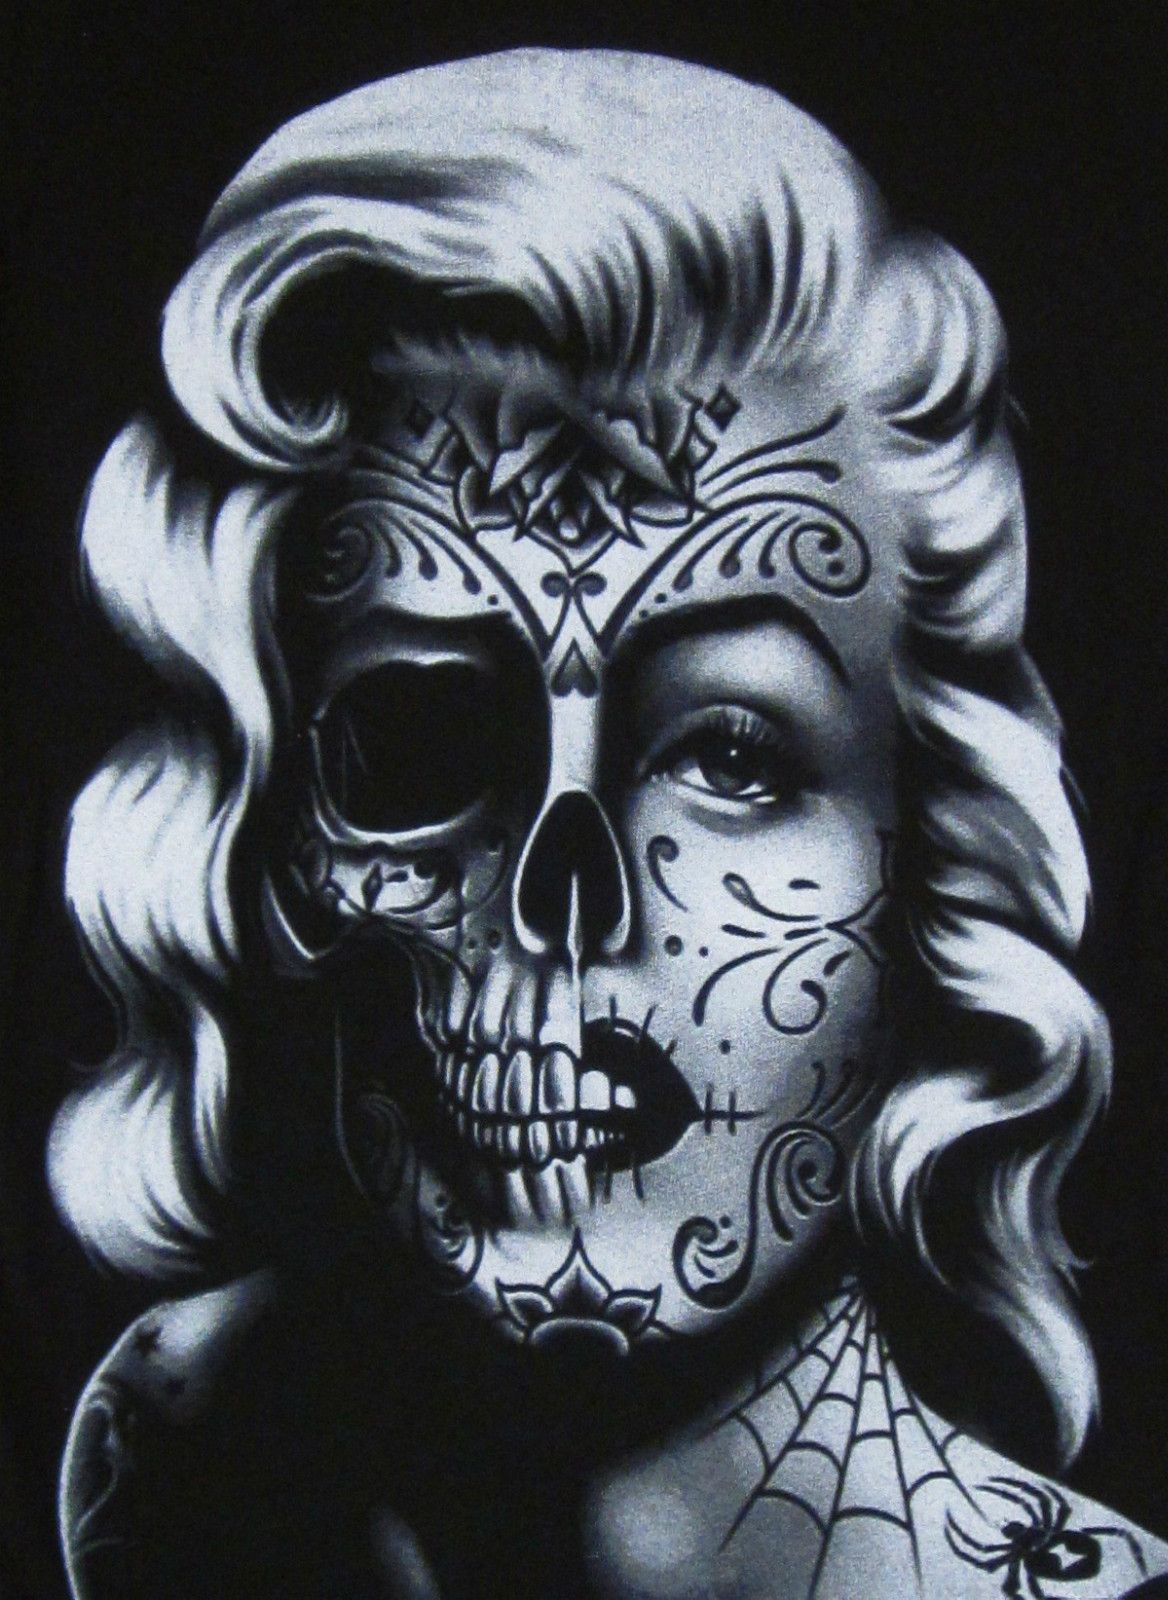 Women marilyn monroe skull zombie face body skeleton for Marilyn monroe skull tattoos